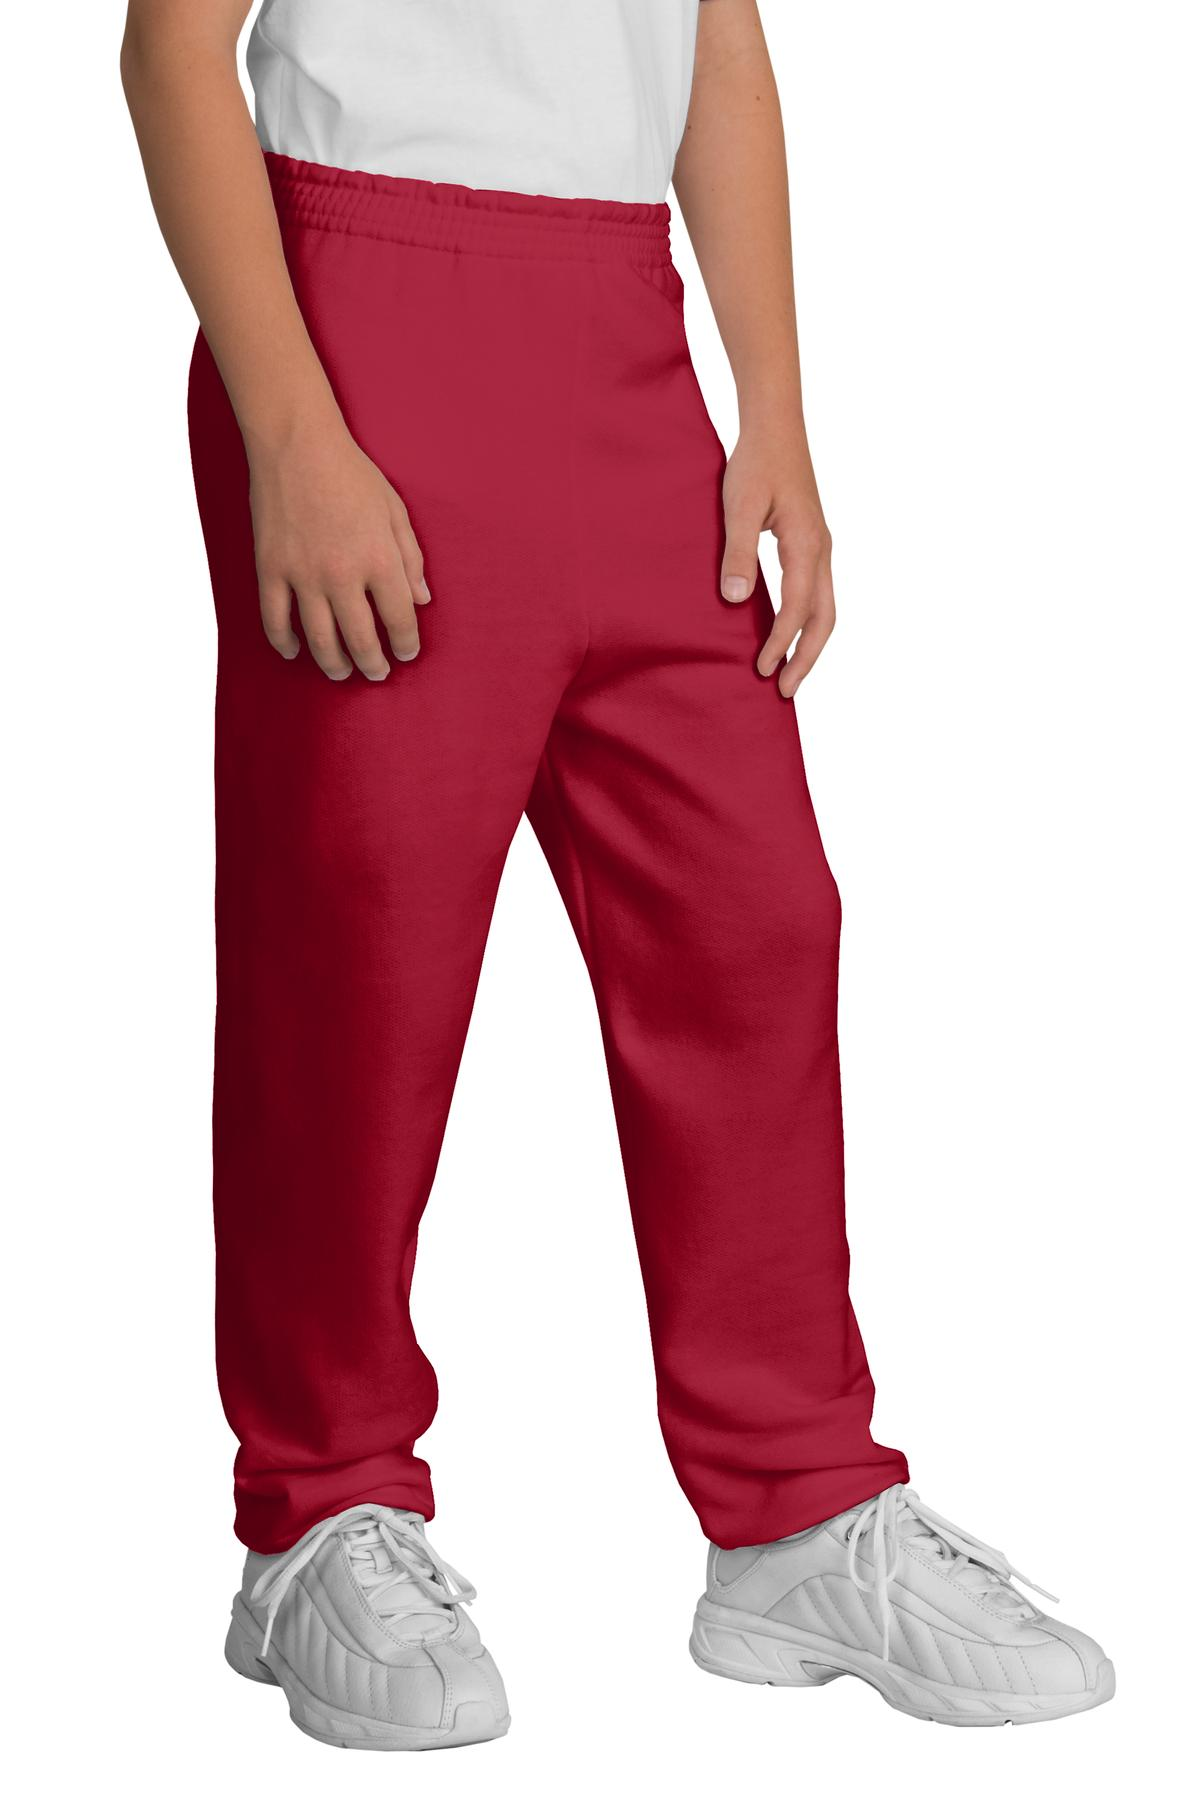 Port & Company ®  - Youth Core Fleece Sweatpant.  PC90YP - Red